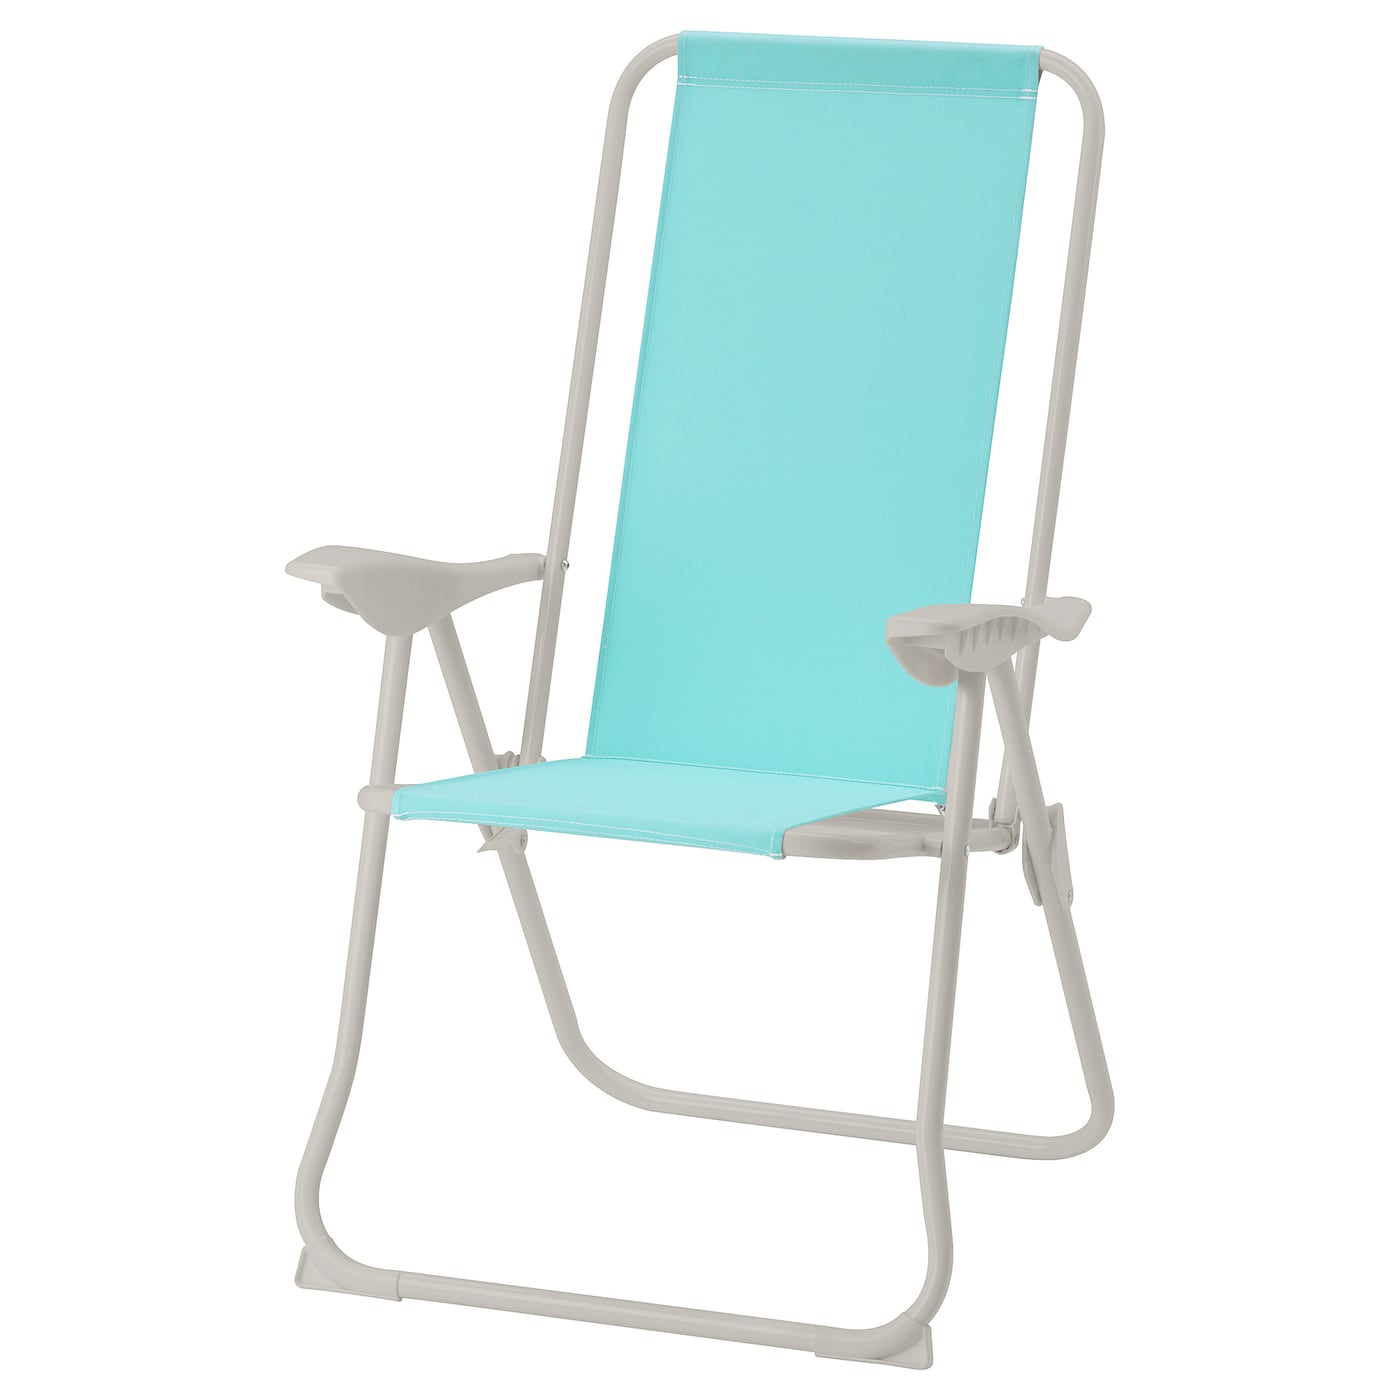 H…M– Reclining chair Turquoise IKEA